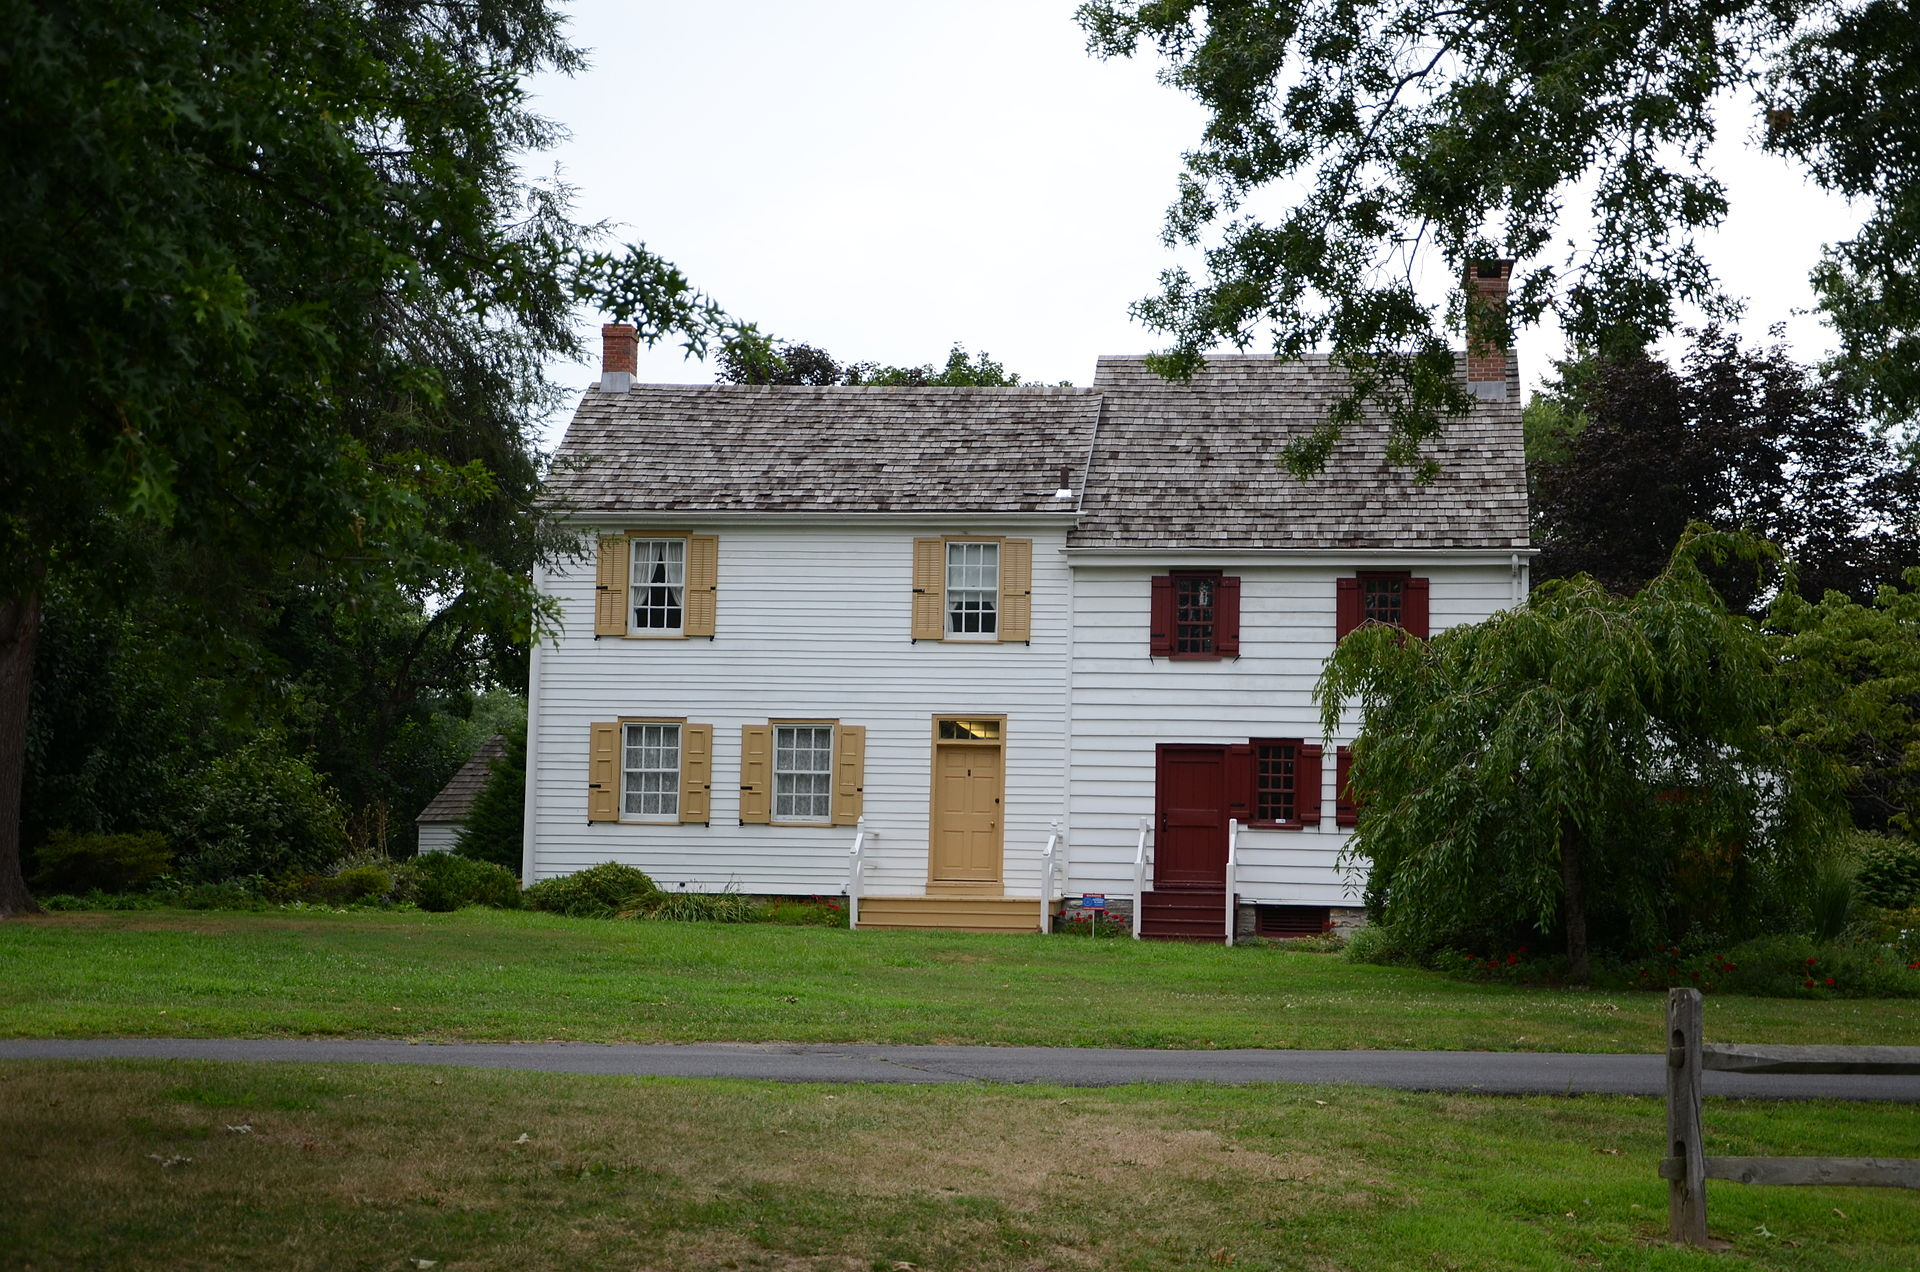 The John Abbott II House was built around 1730 and was the location where the colony's treasurer hid money in December 1776 after being forced to flee from advancing British troops in Trenton.